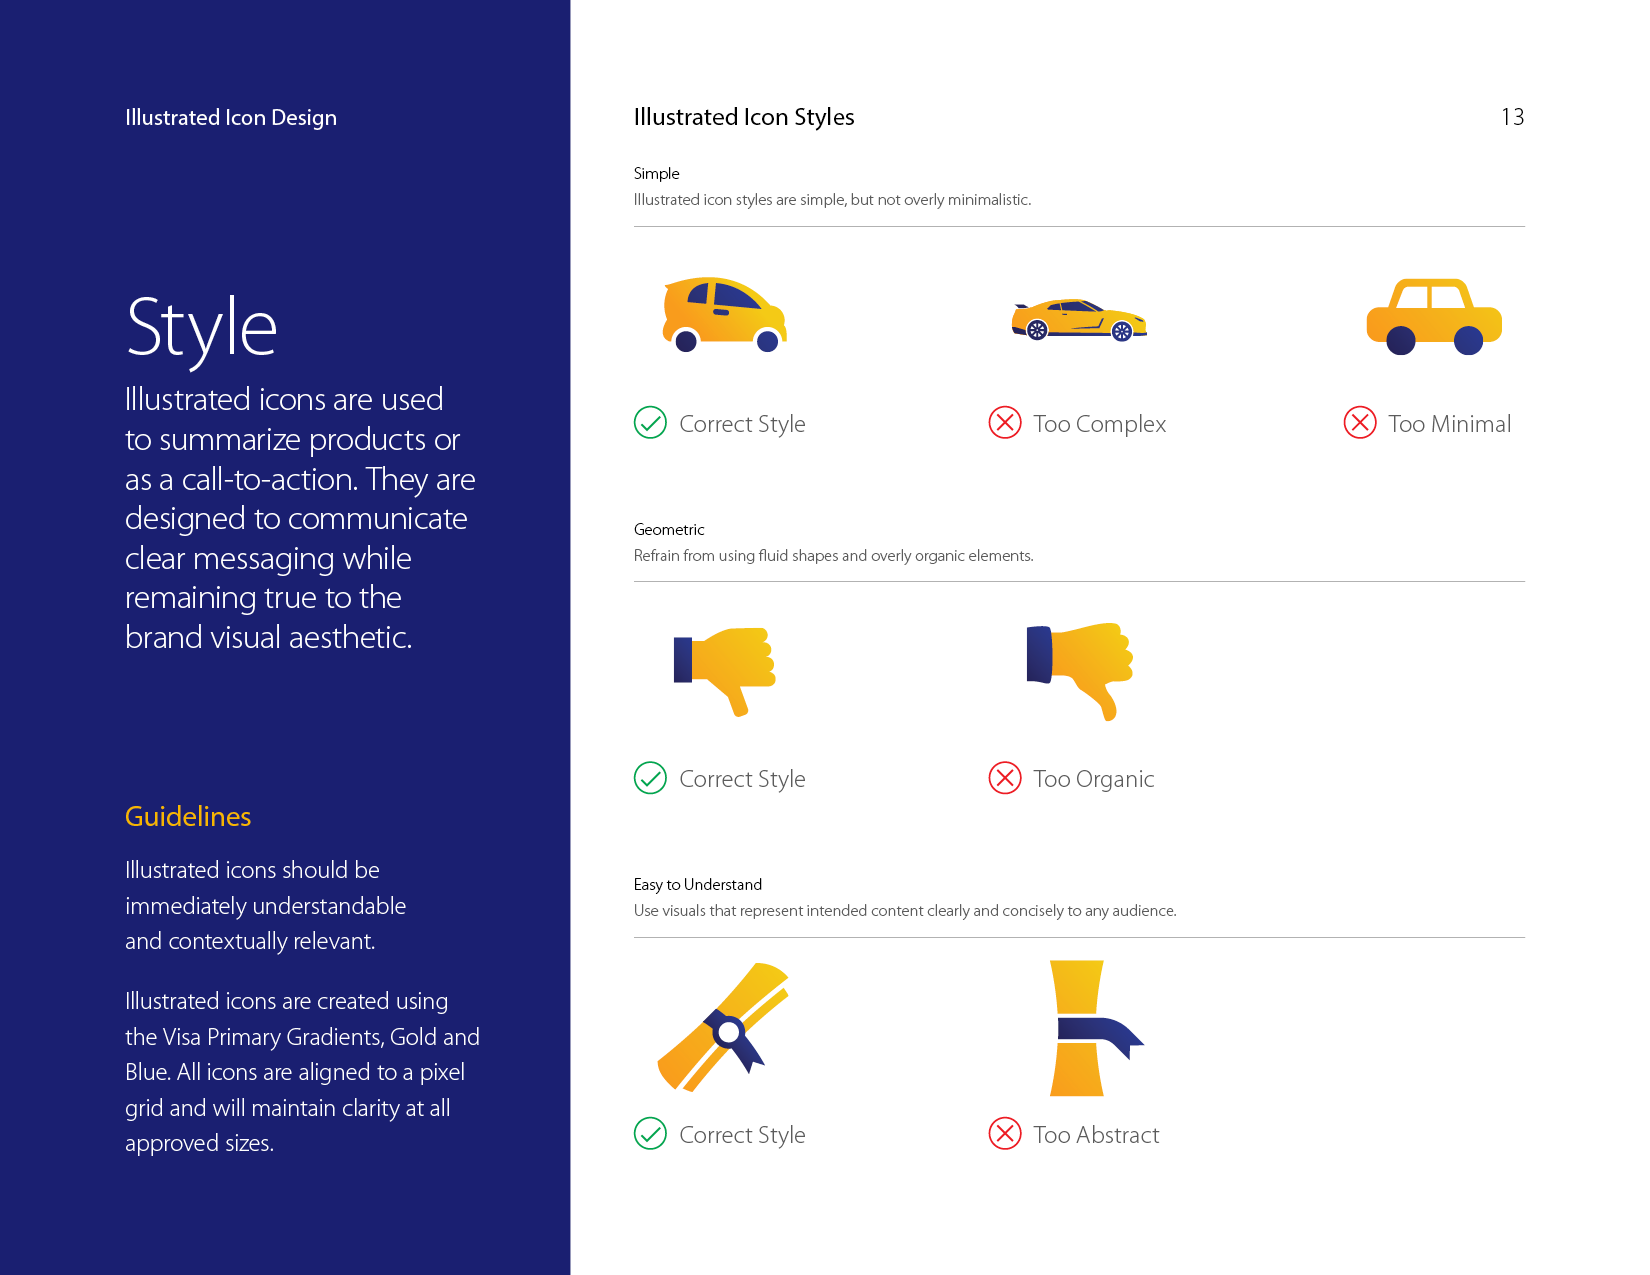 Visa illustrated icons style guide style overview